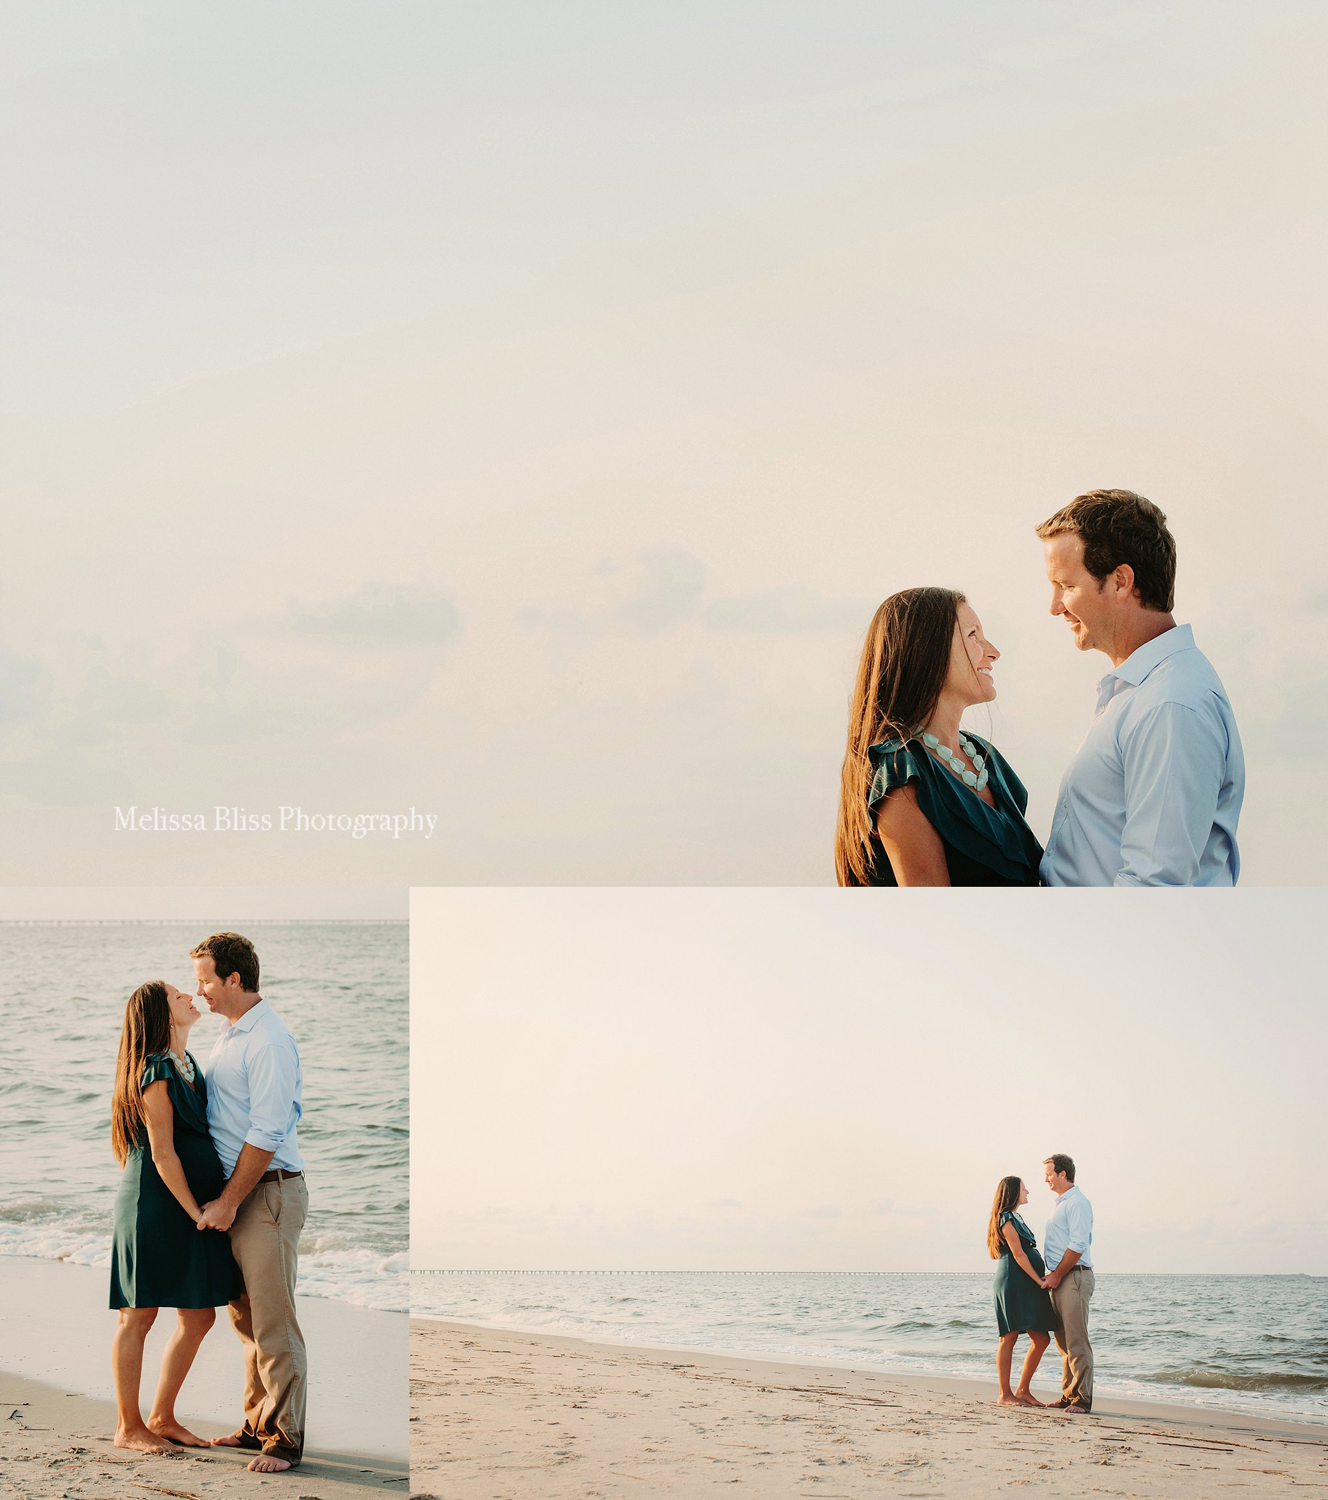 creative-portraits-intimate-couples-session-melissa-bliss-photography-norfolk-chesapeake-virginia-beach-maternity-photographer.jpg